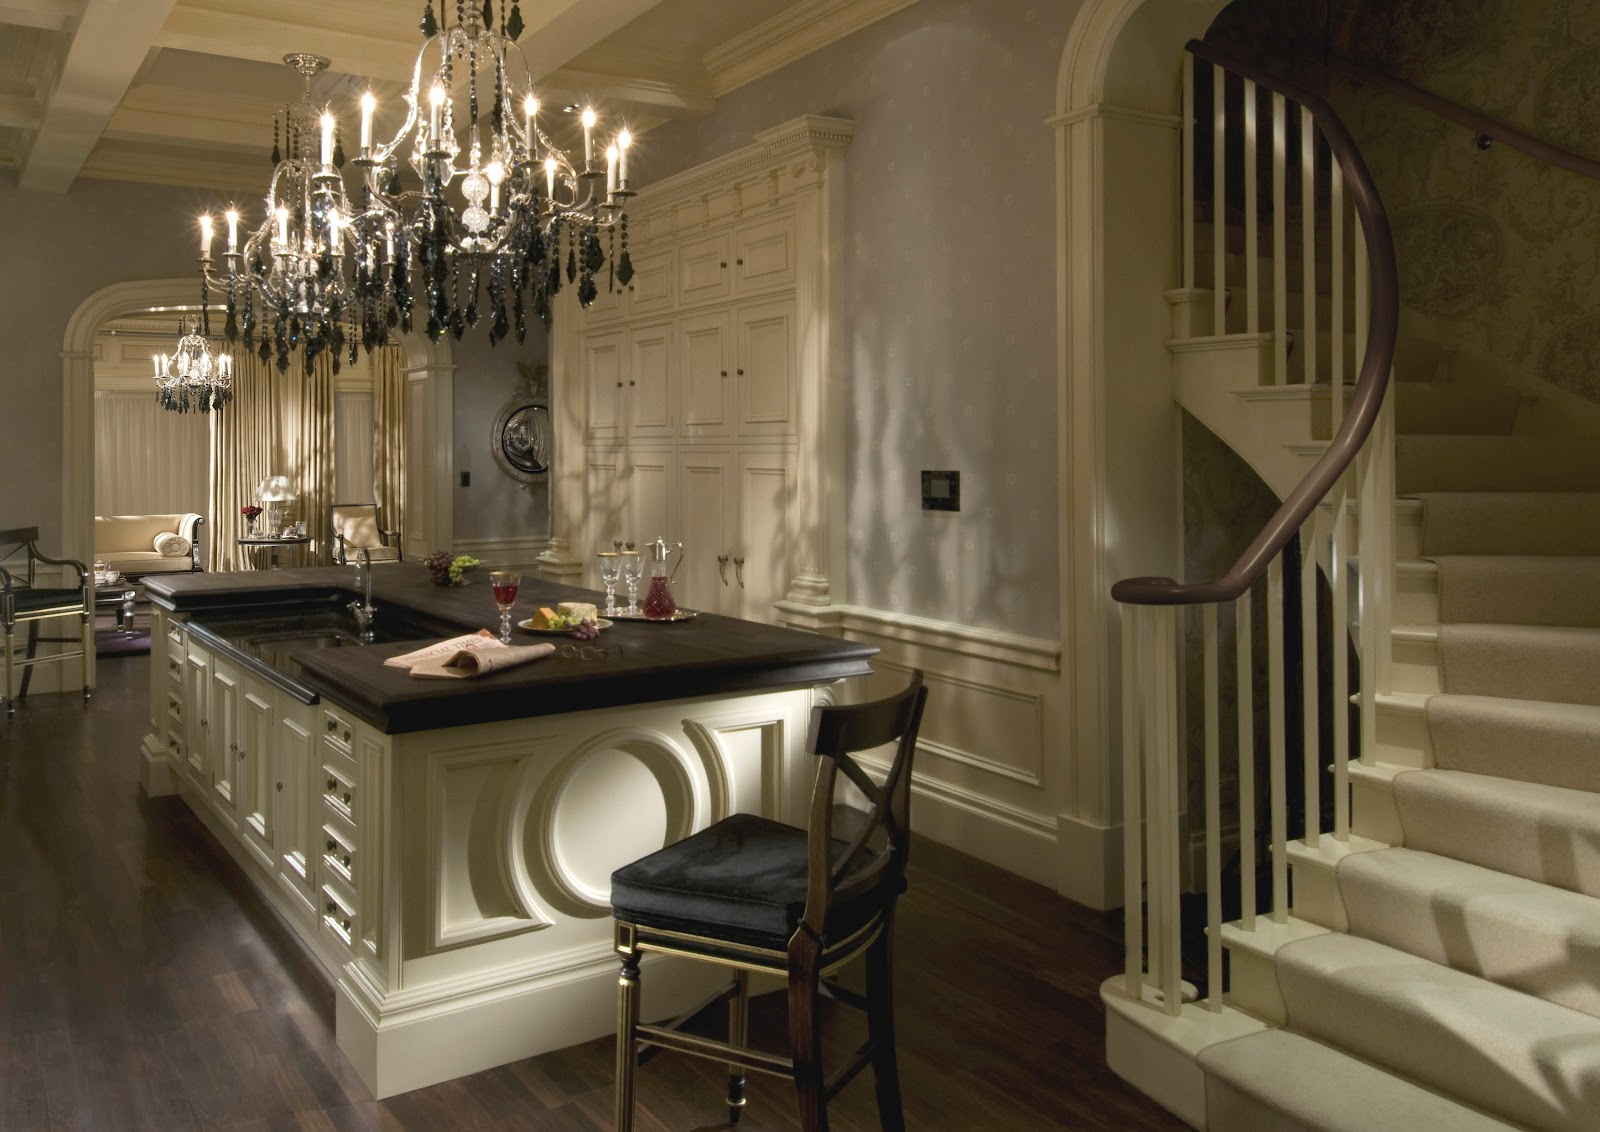 Tradition interiors of nottingham clive christian million pound project for Keuken landhuis